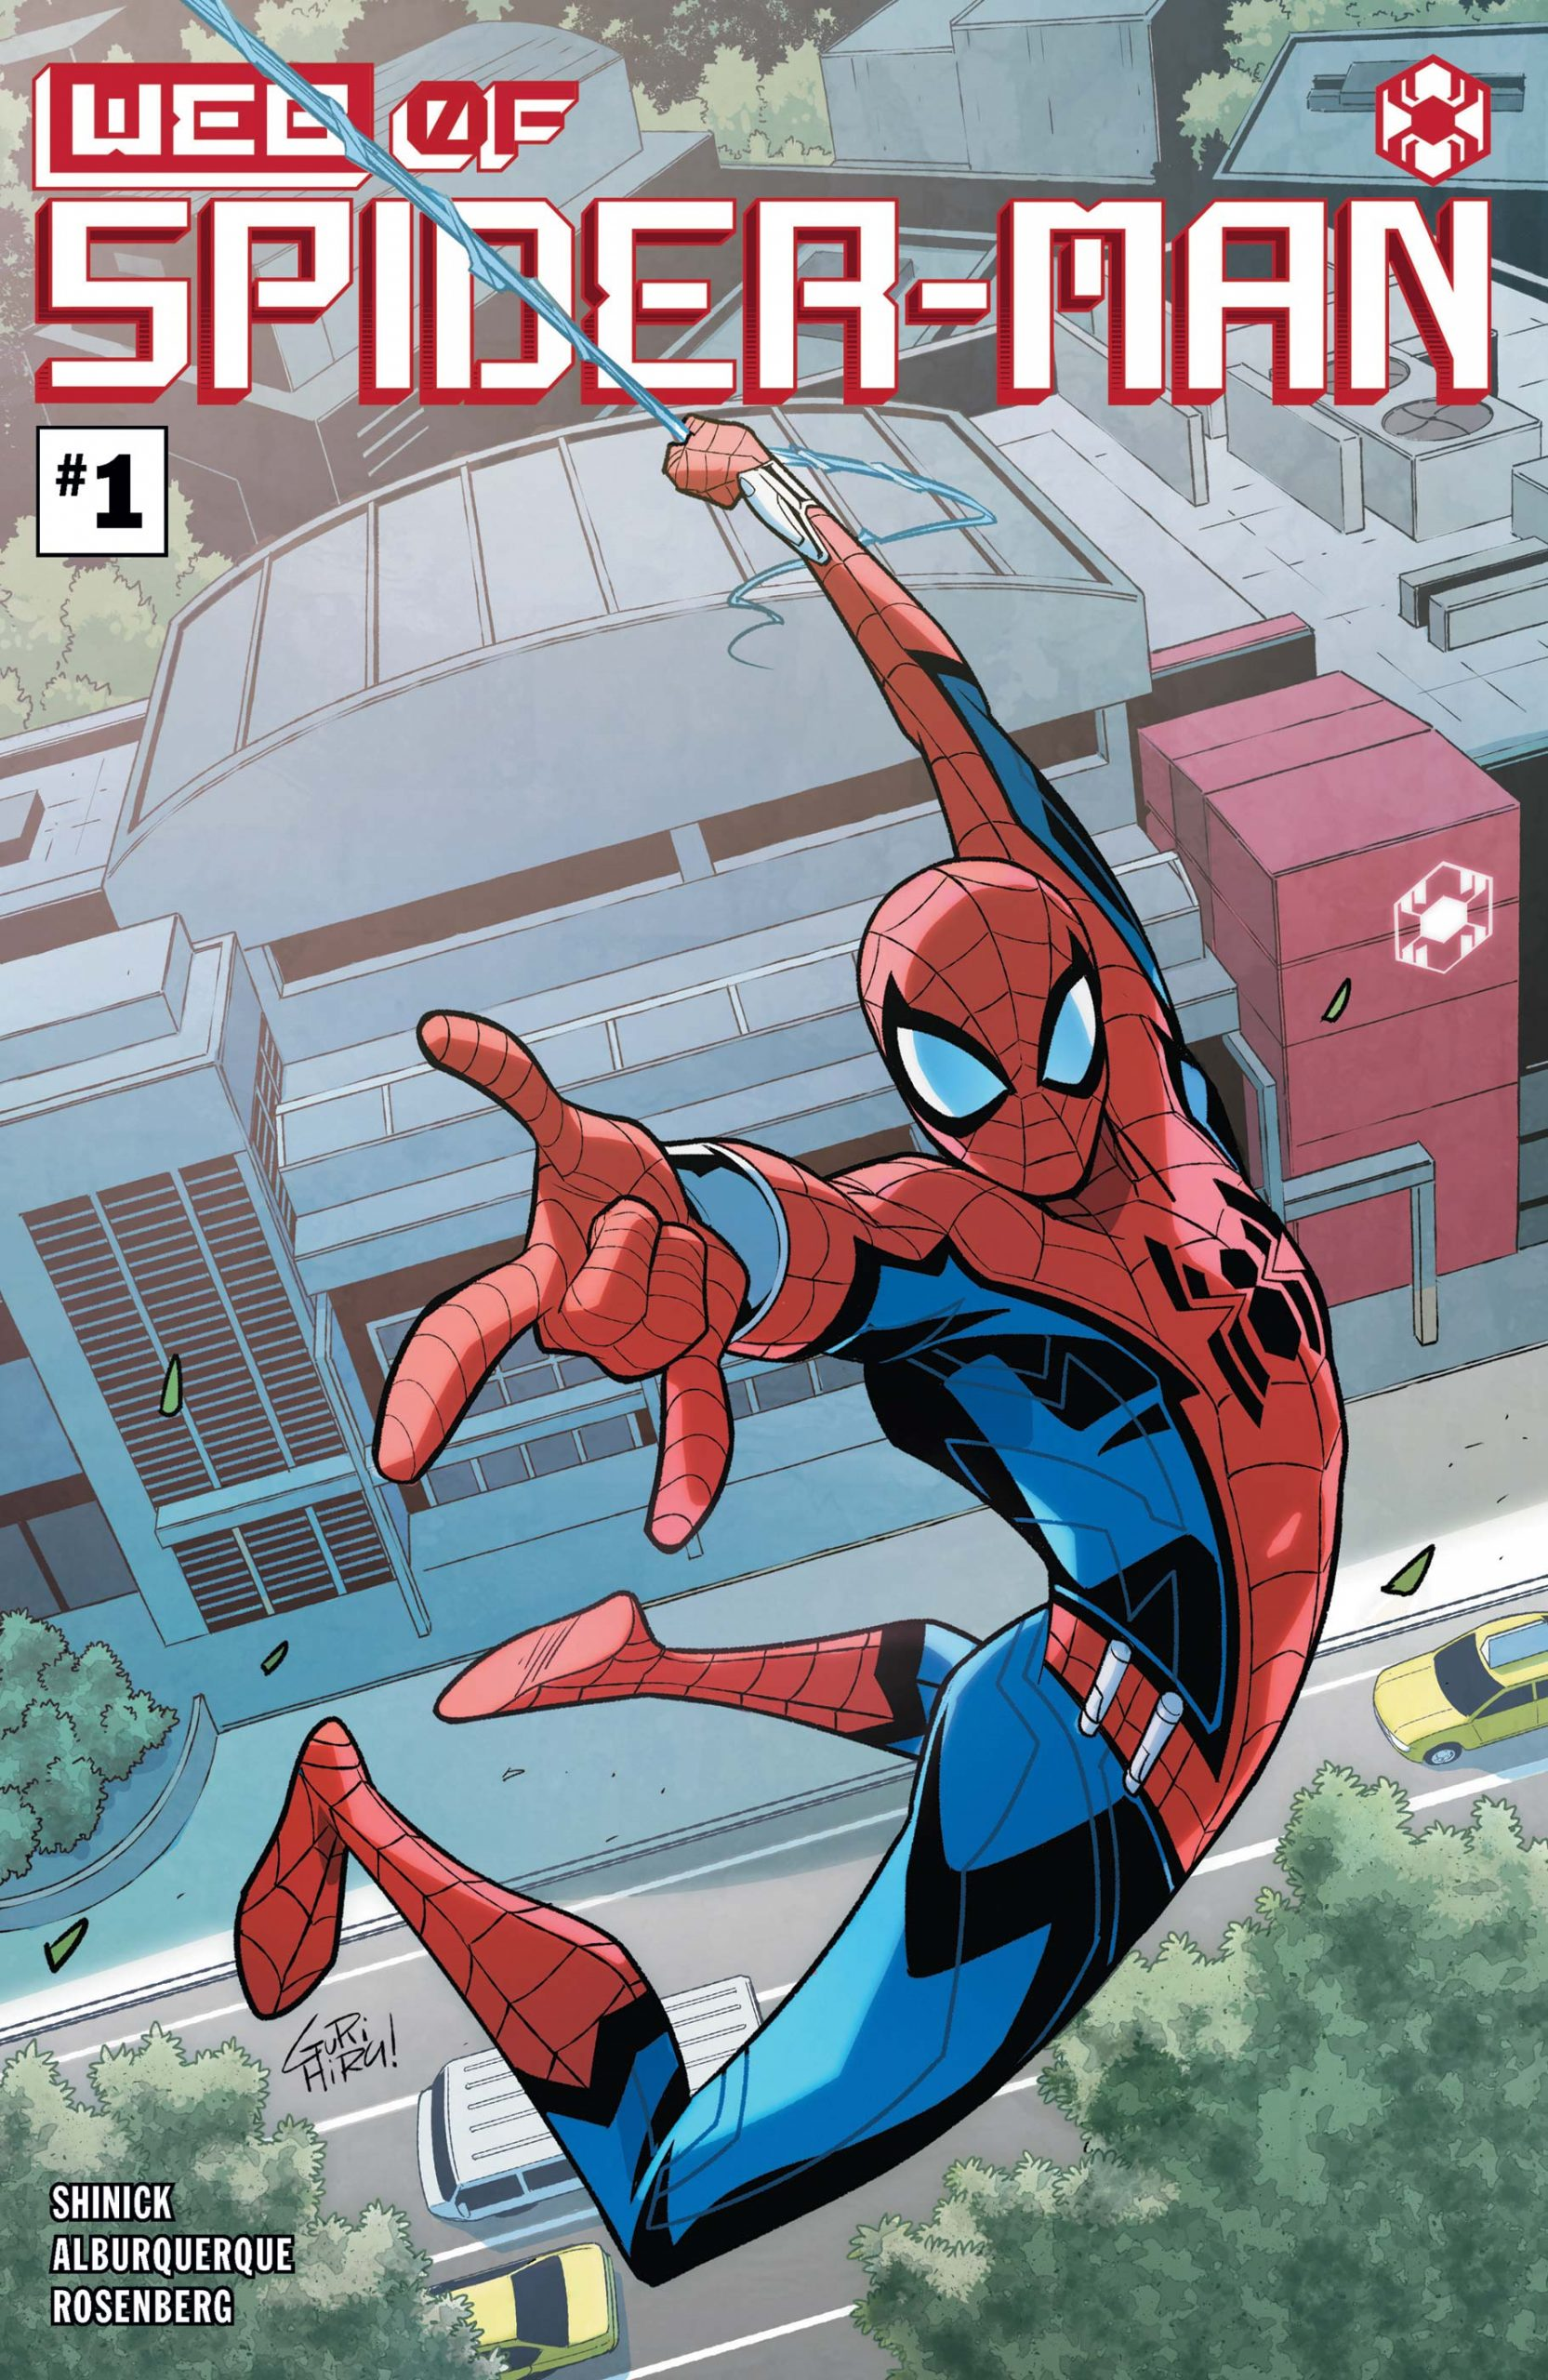 w.e.b.-of-spider-man-1-spoilers-0-1-scaled-1 w.e.b.-of-spider-man-1-spoilers-0-1-scaled-1